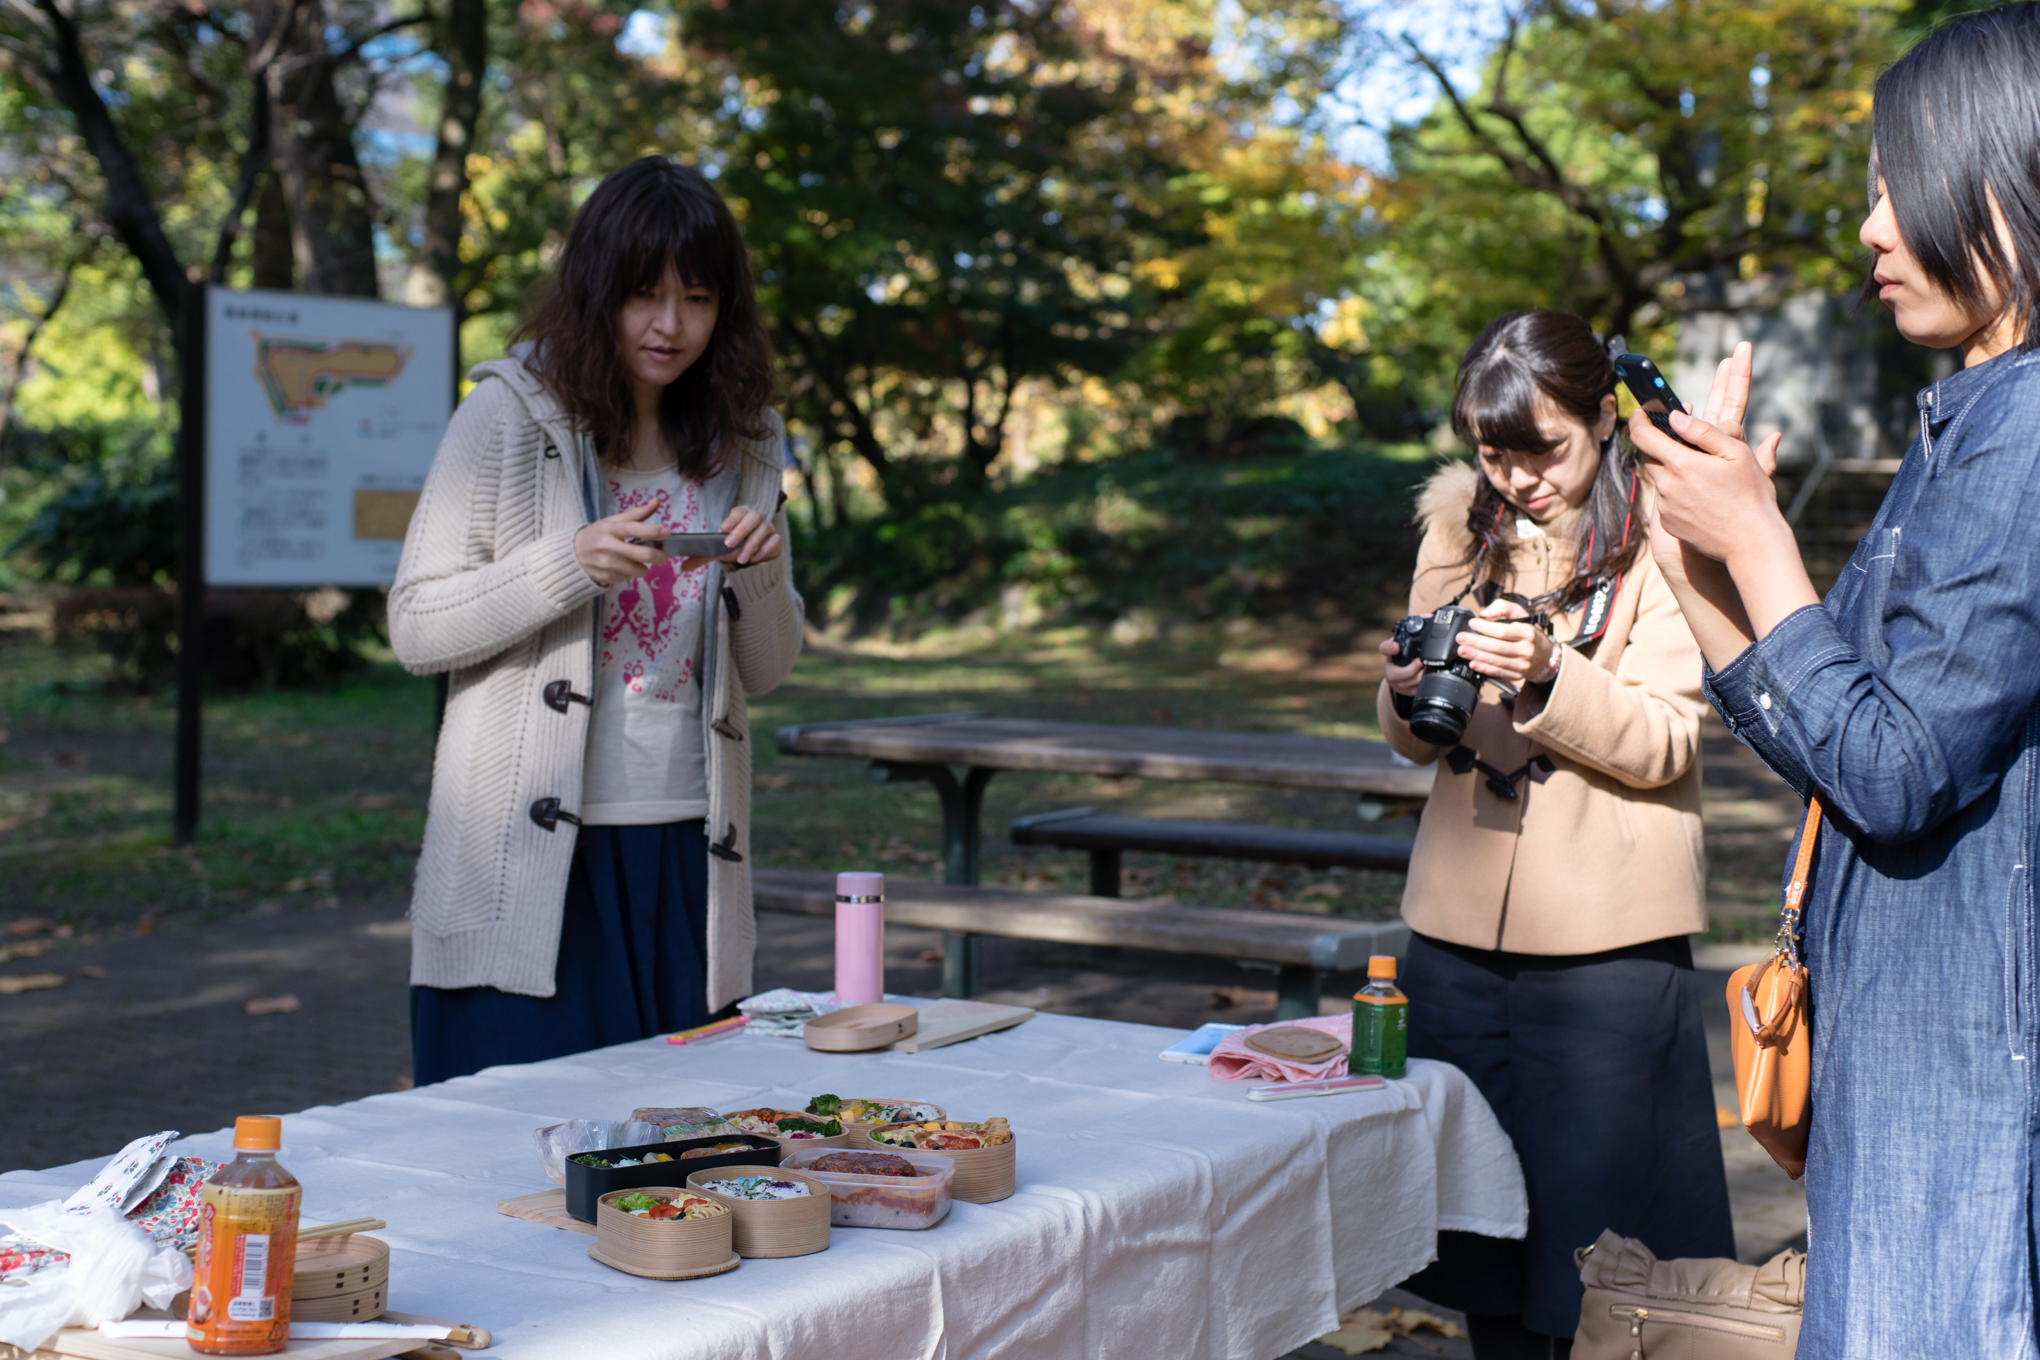 magewappa-picnic-in-tokyo-info-2016-52